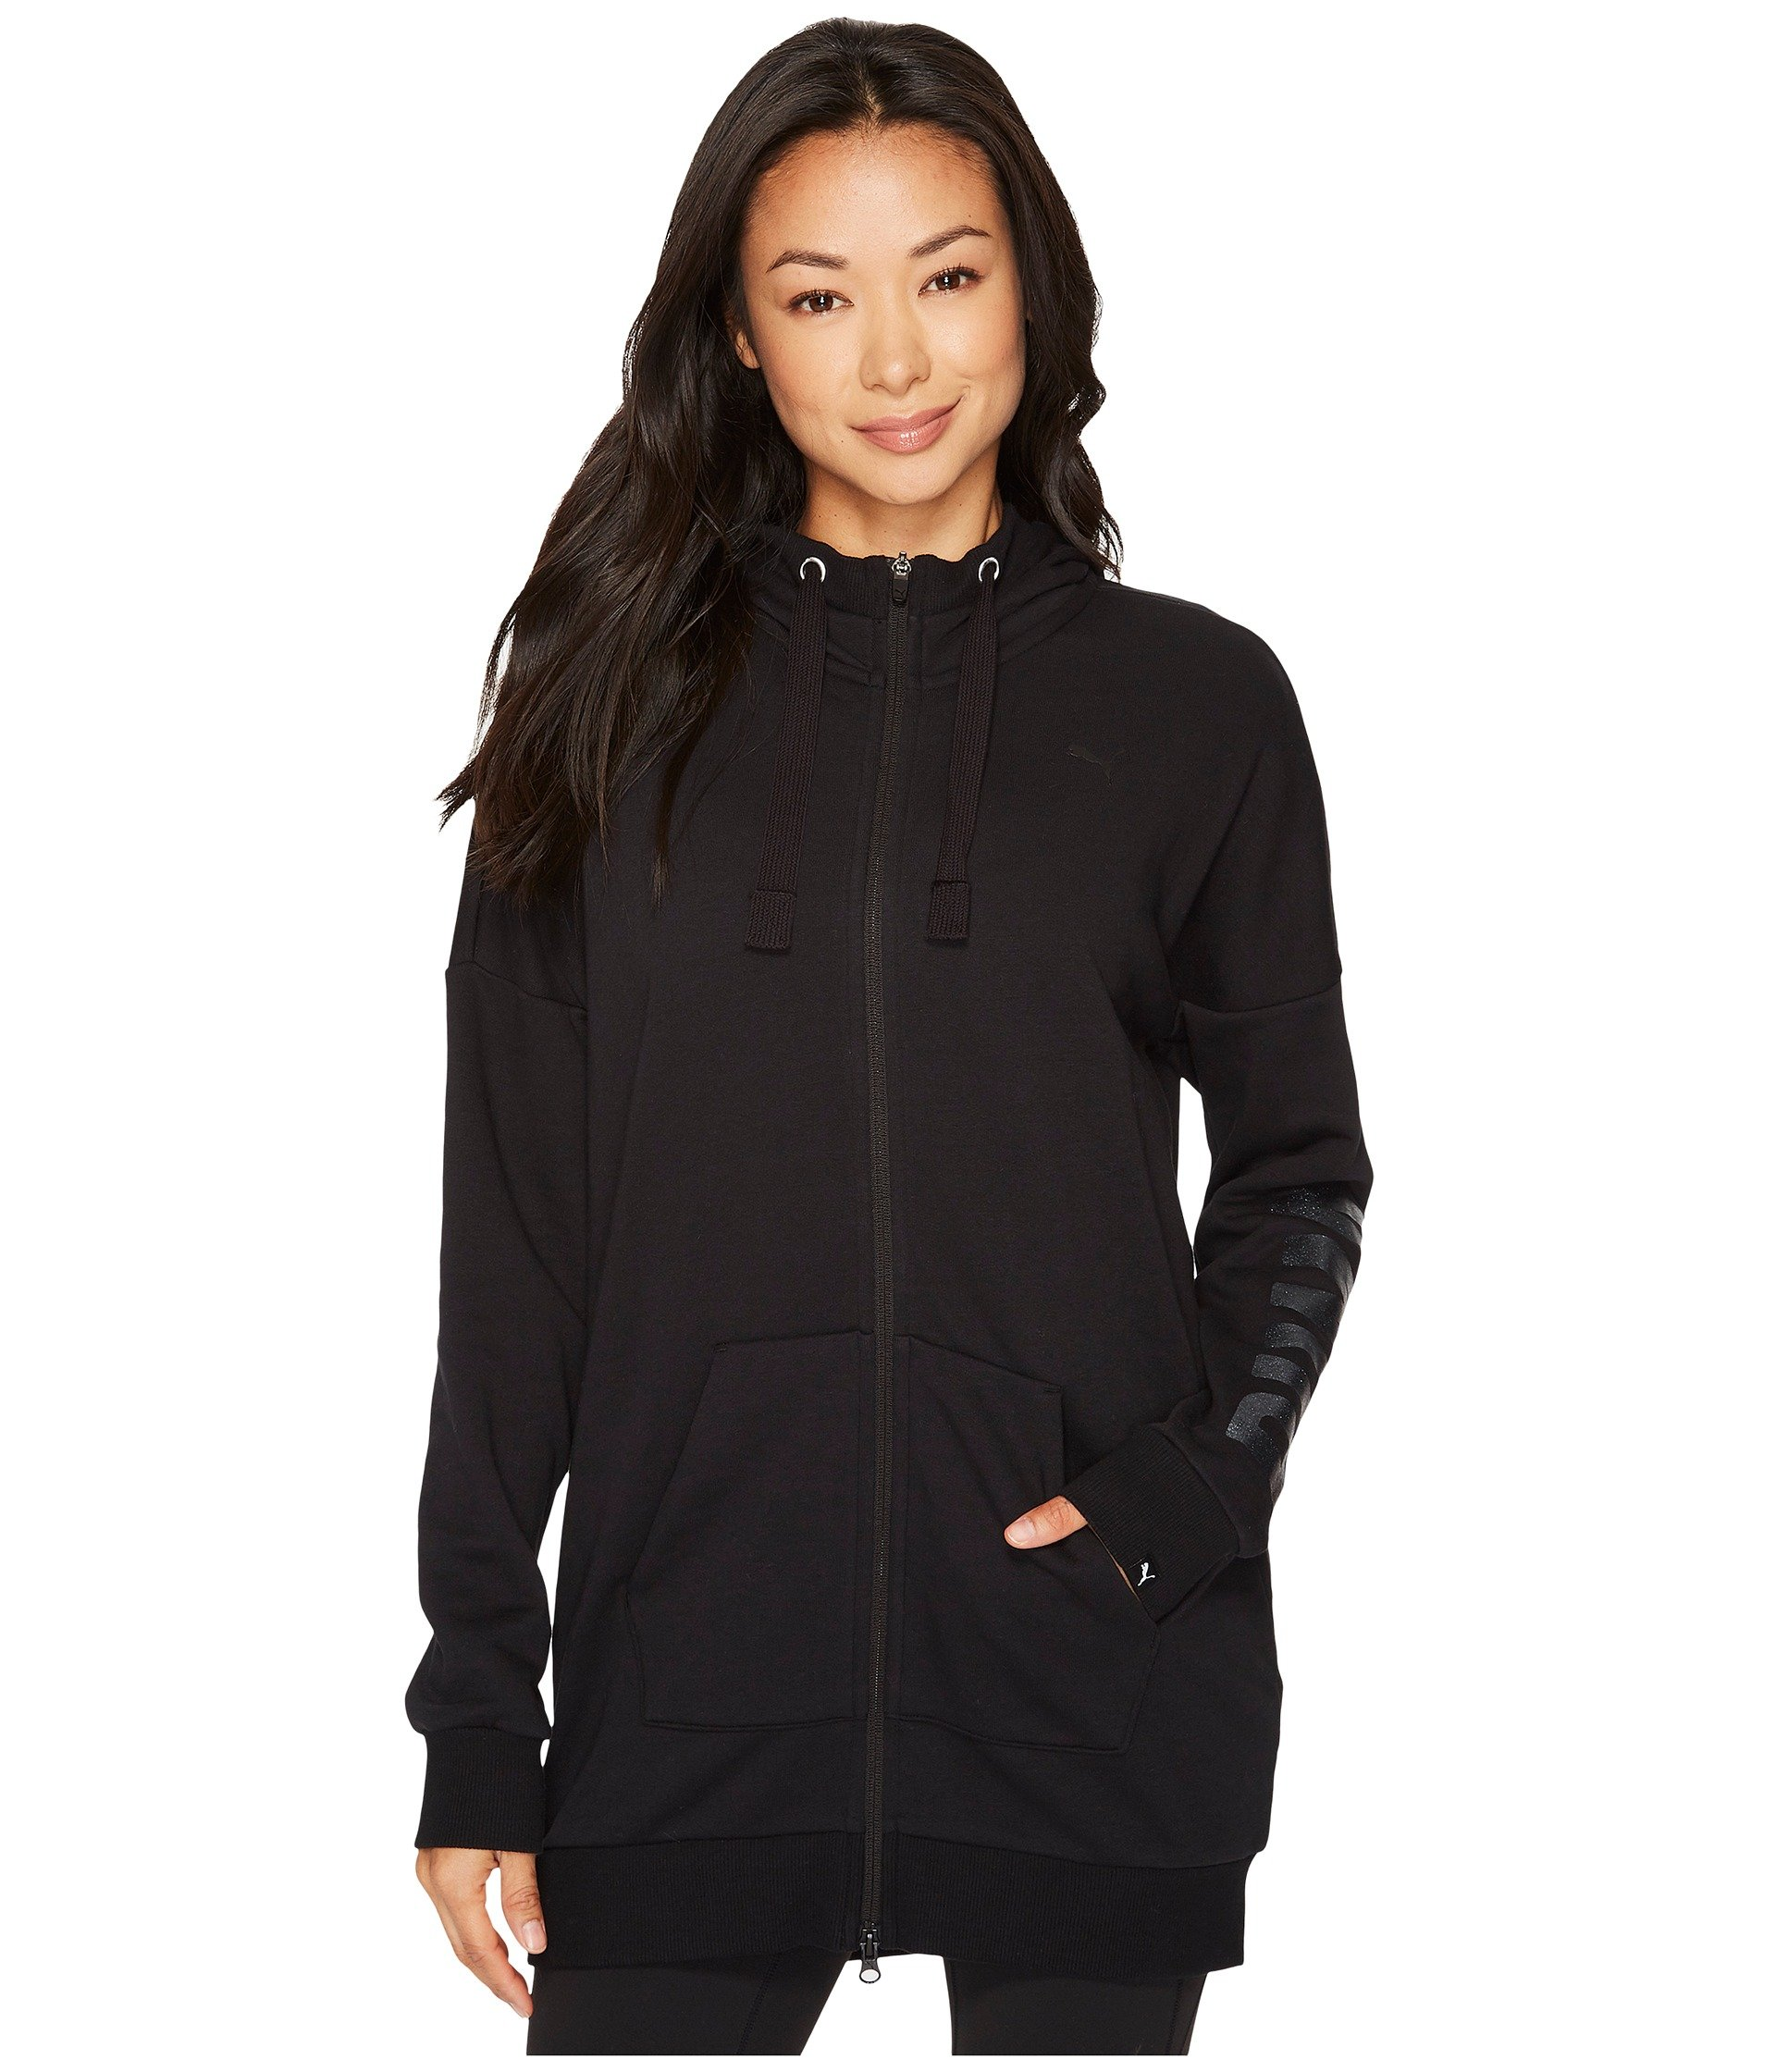 PUMA Women's Fusion Elongated Full Zip Hoodie Cotton Black/Glitter X-Large by PUMA (Image #1)